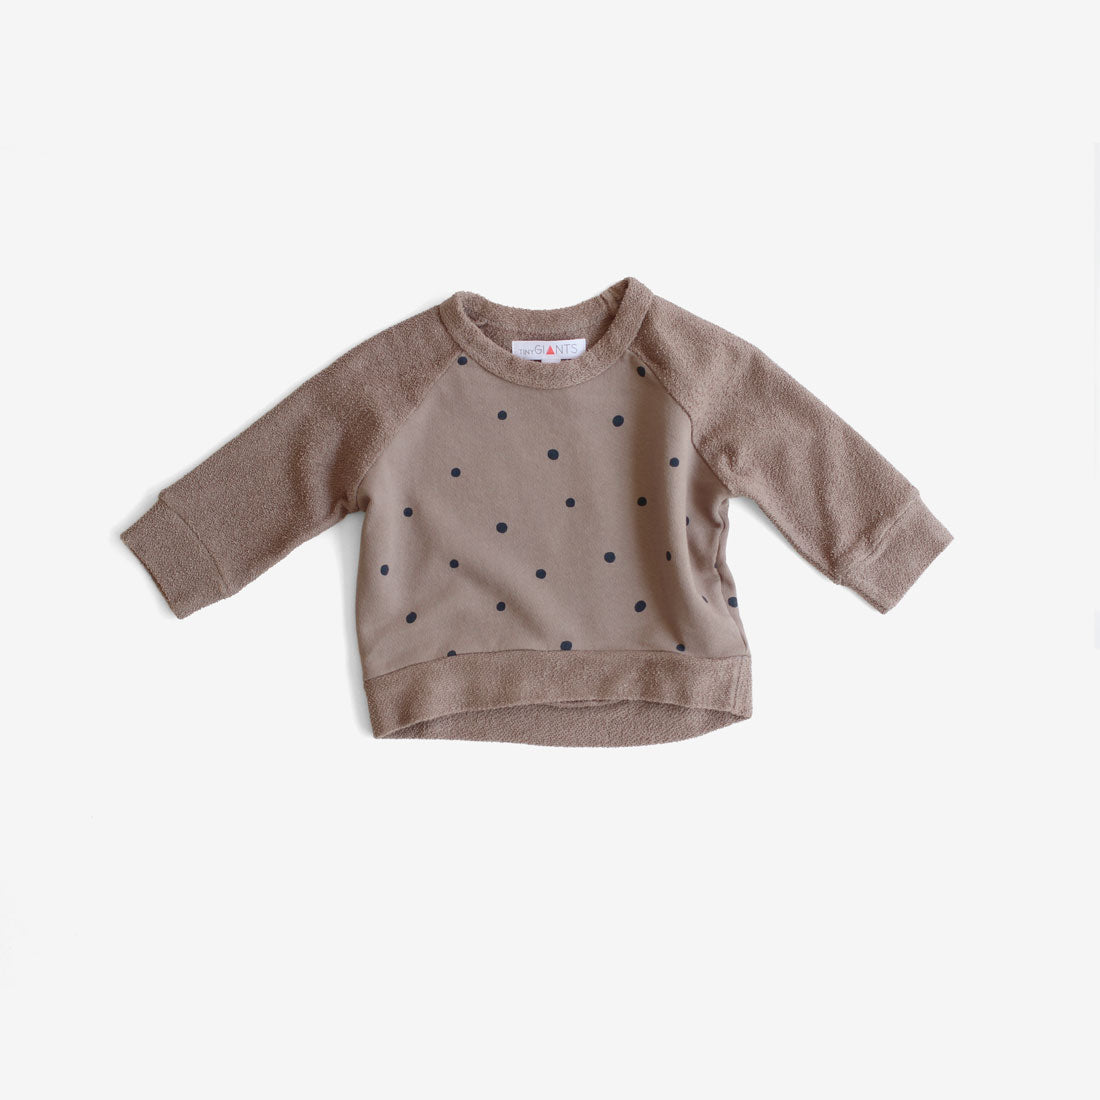 Polka Dot French Terry Sweatshirt - Taupe